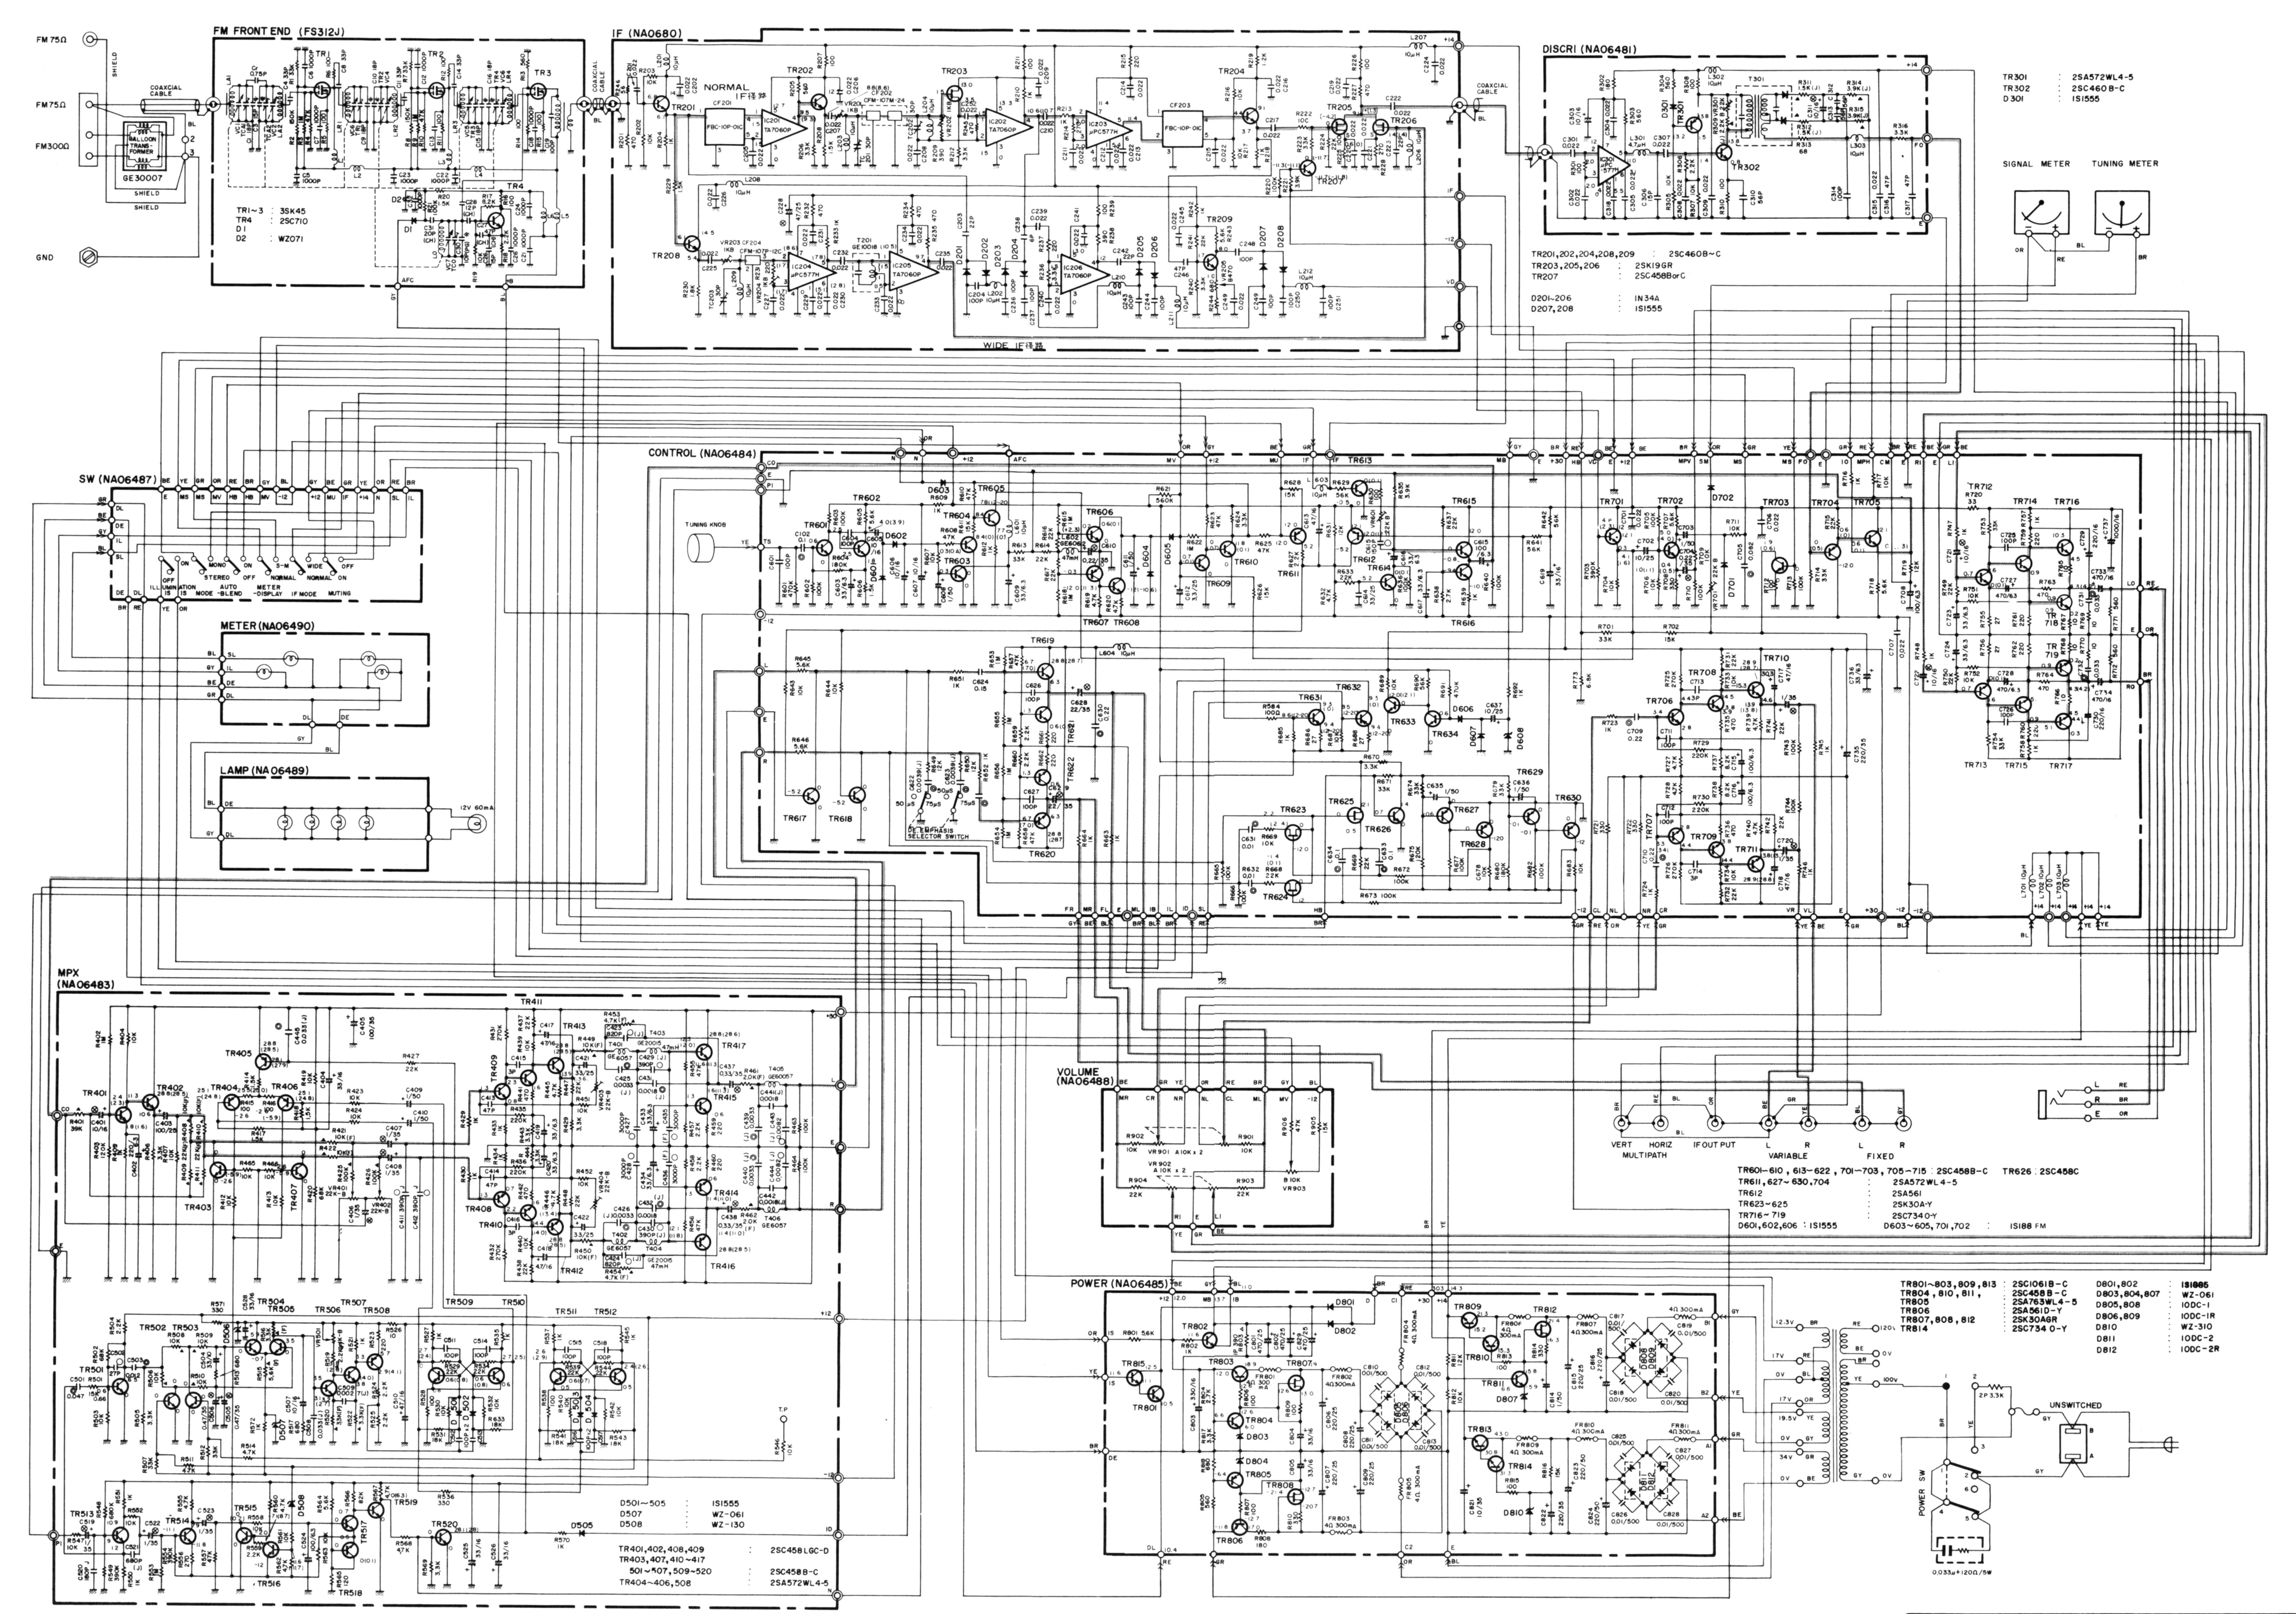 CT 7000schematic tuner information center yamaha tuners yamaha schematic diagram at nearapp.co